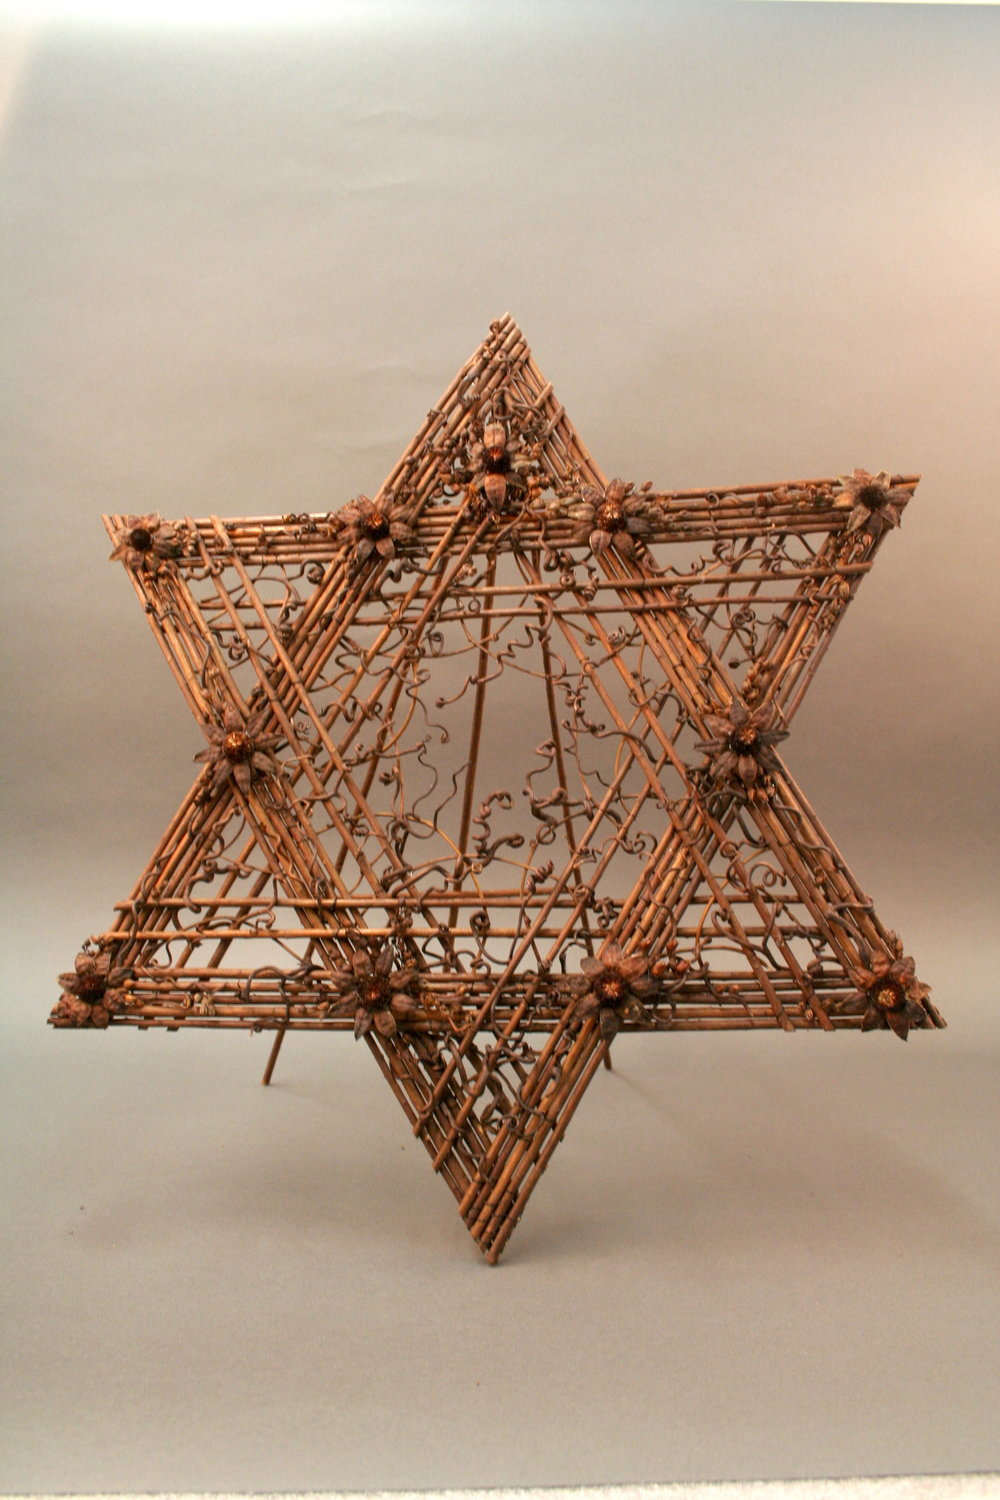 A wicker Jewish star sent in remembrance of the Pittsburgh synagogue shooting.